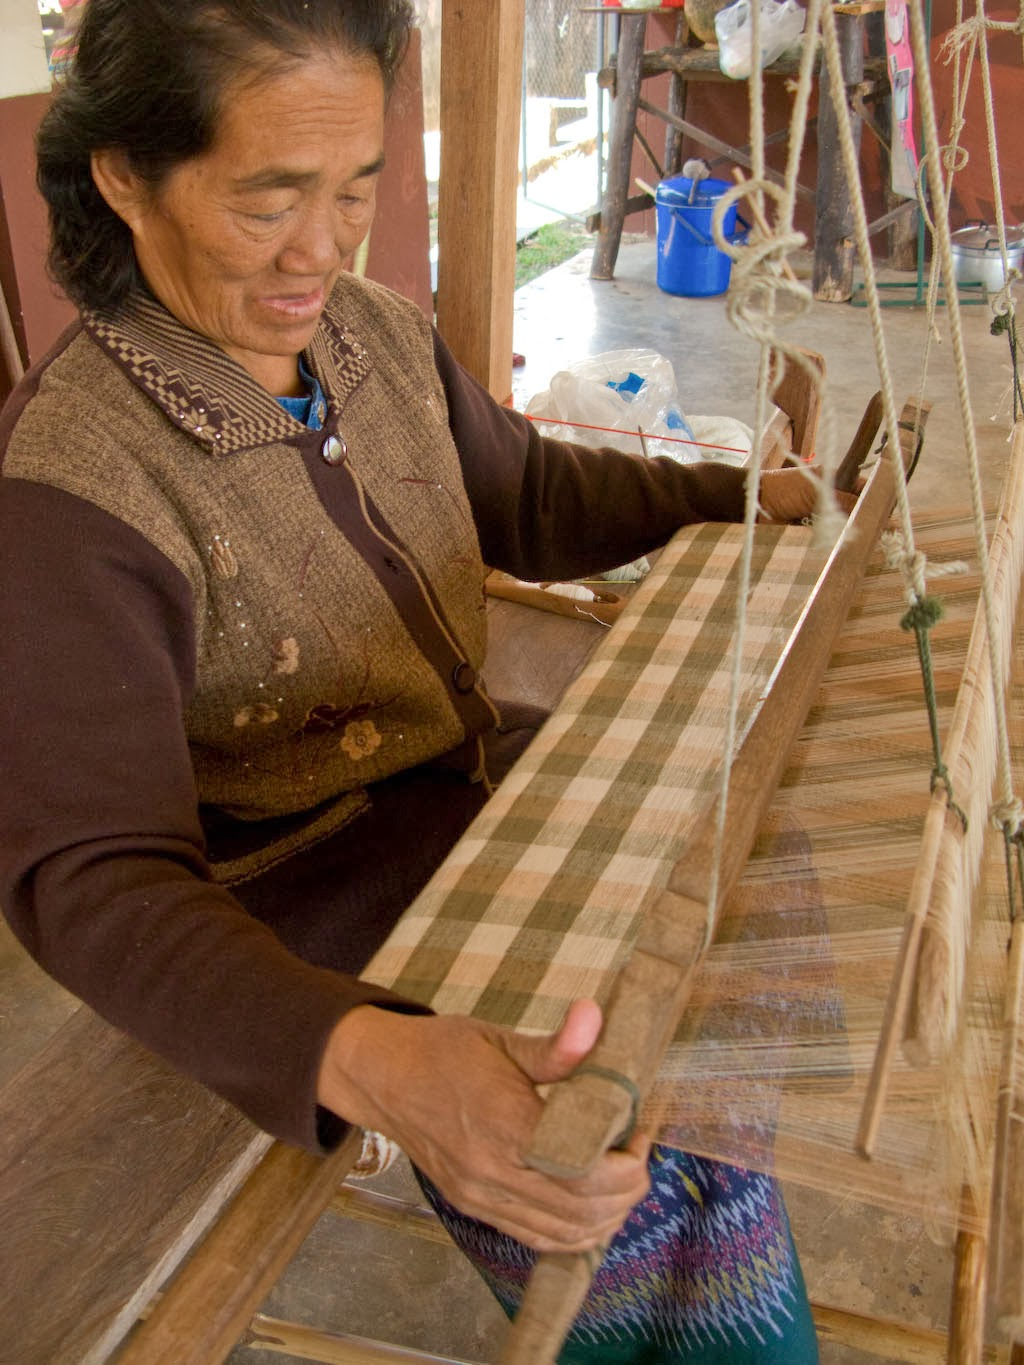 Praphai has been weaving for more than 50 years. Today she weaves a plain cloth in a checked pattern, but her greatest love is to weave every day.